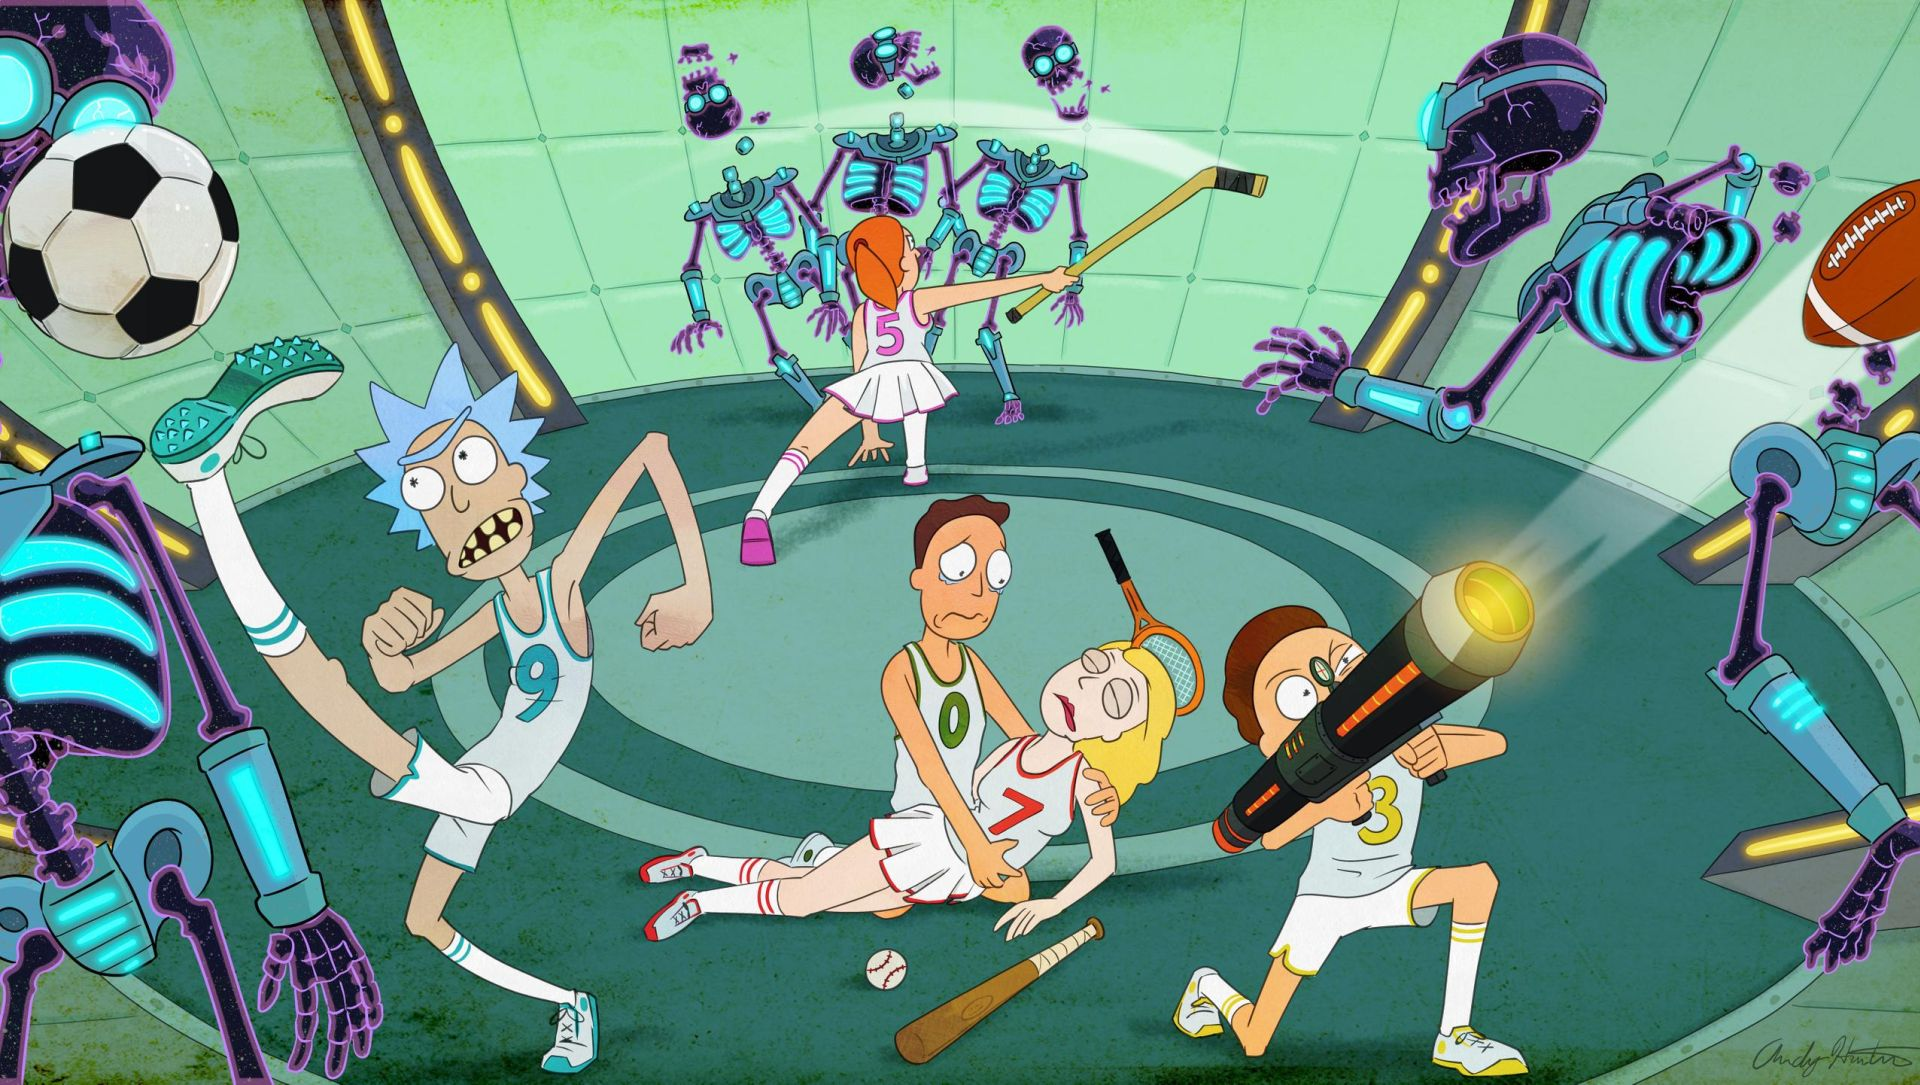 Rick and Morty Trippy wallpaper